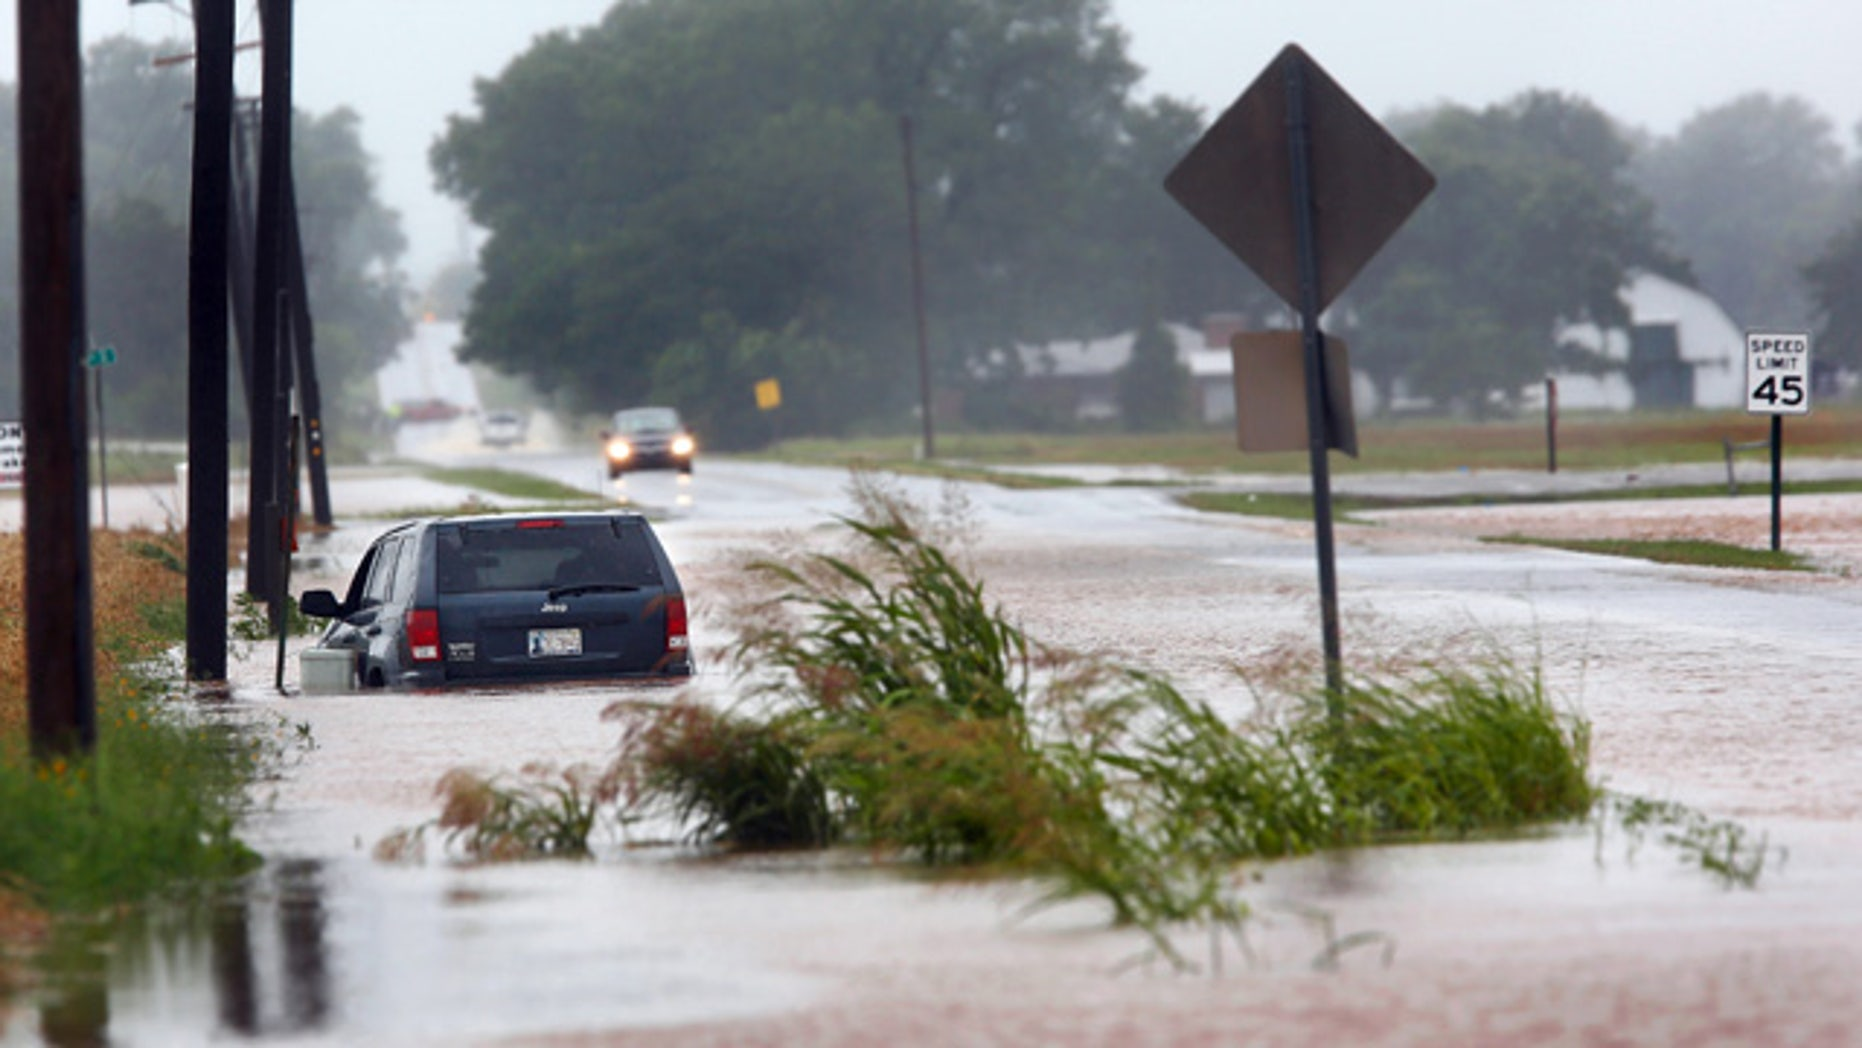 June 18, 2015: A vehicle is pointed the wrong direction after high water pushed it into a ditch on the south side of Hardesty Road west of US 177 in Shawnee, Okla. (Jim Beckel/The Oklahoman via AP)